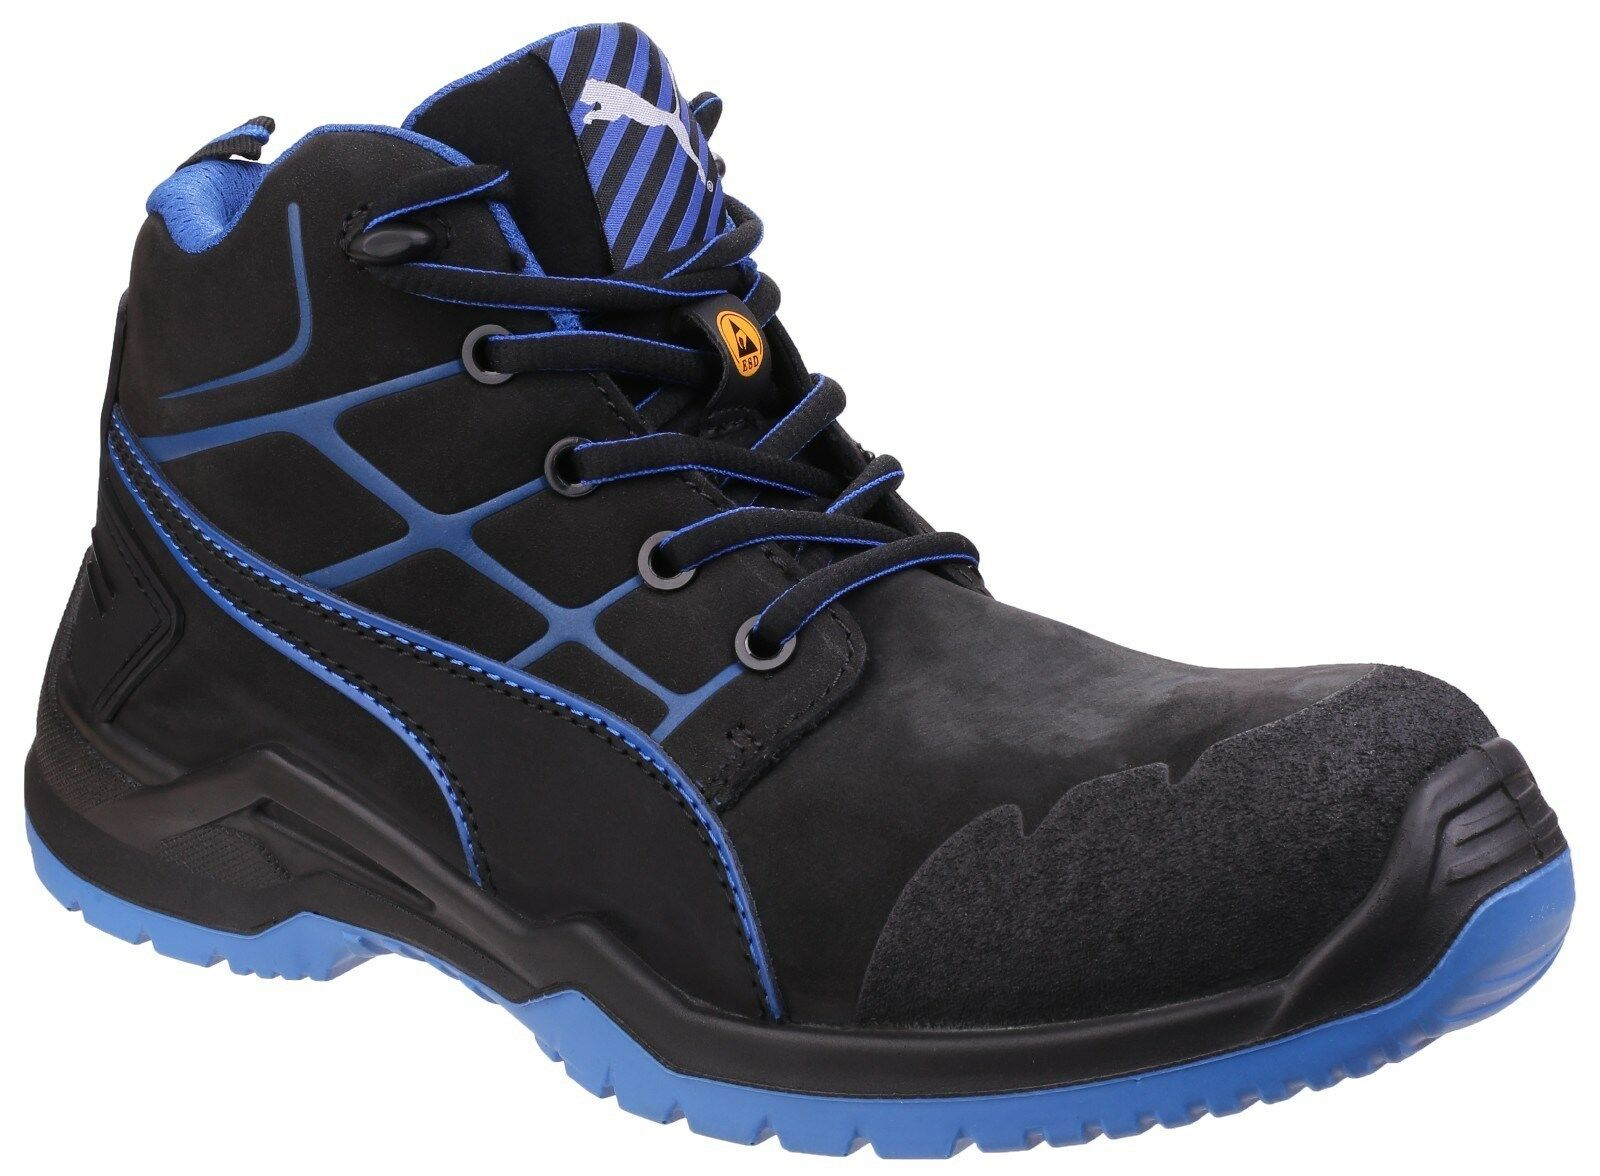 Puma Krypton Safety Safety Safety botas Industrial Fibreglass Toe Cap Hombre Work Zapatos Trainers f1f0dd